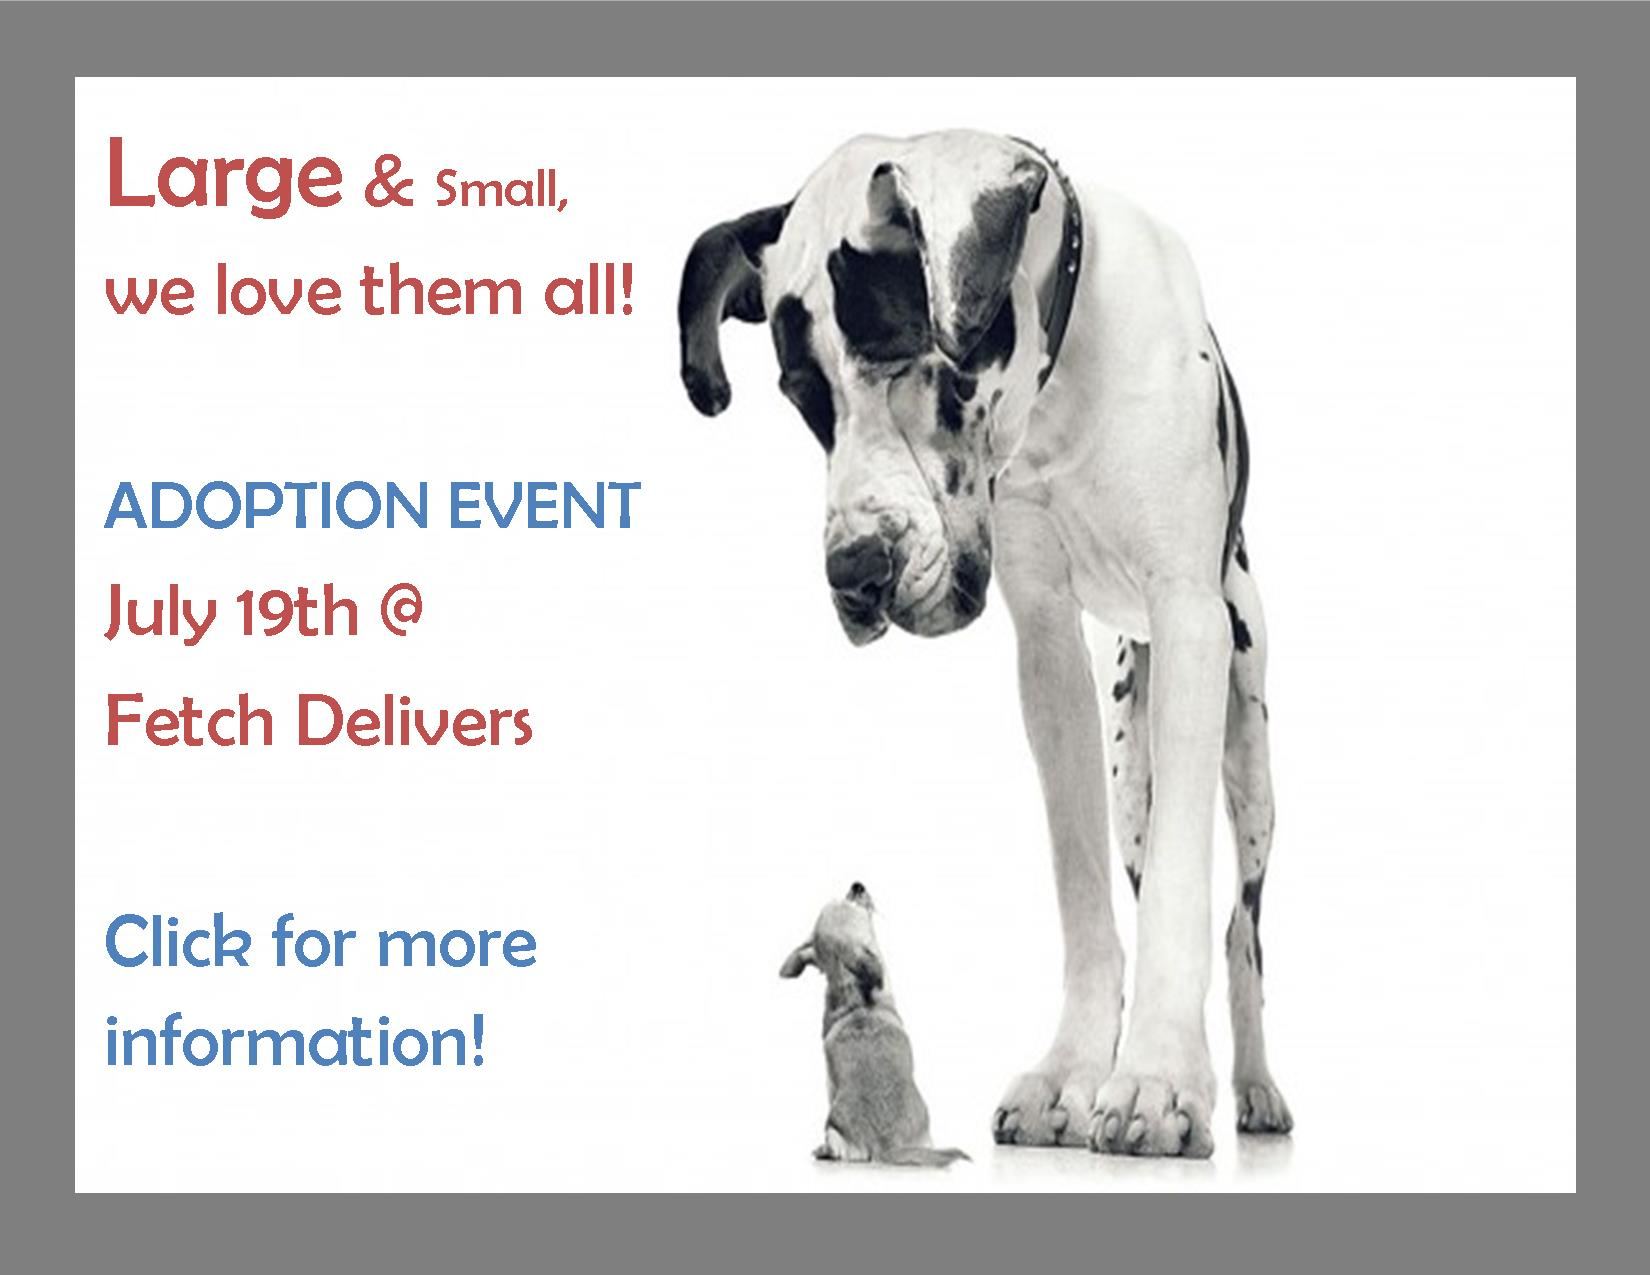 Adoption Event - Large and Small